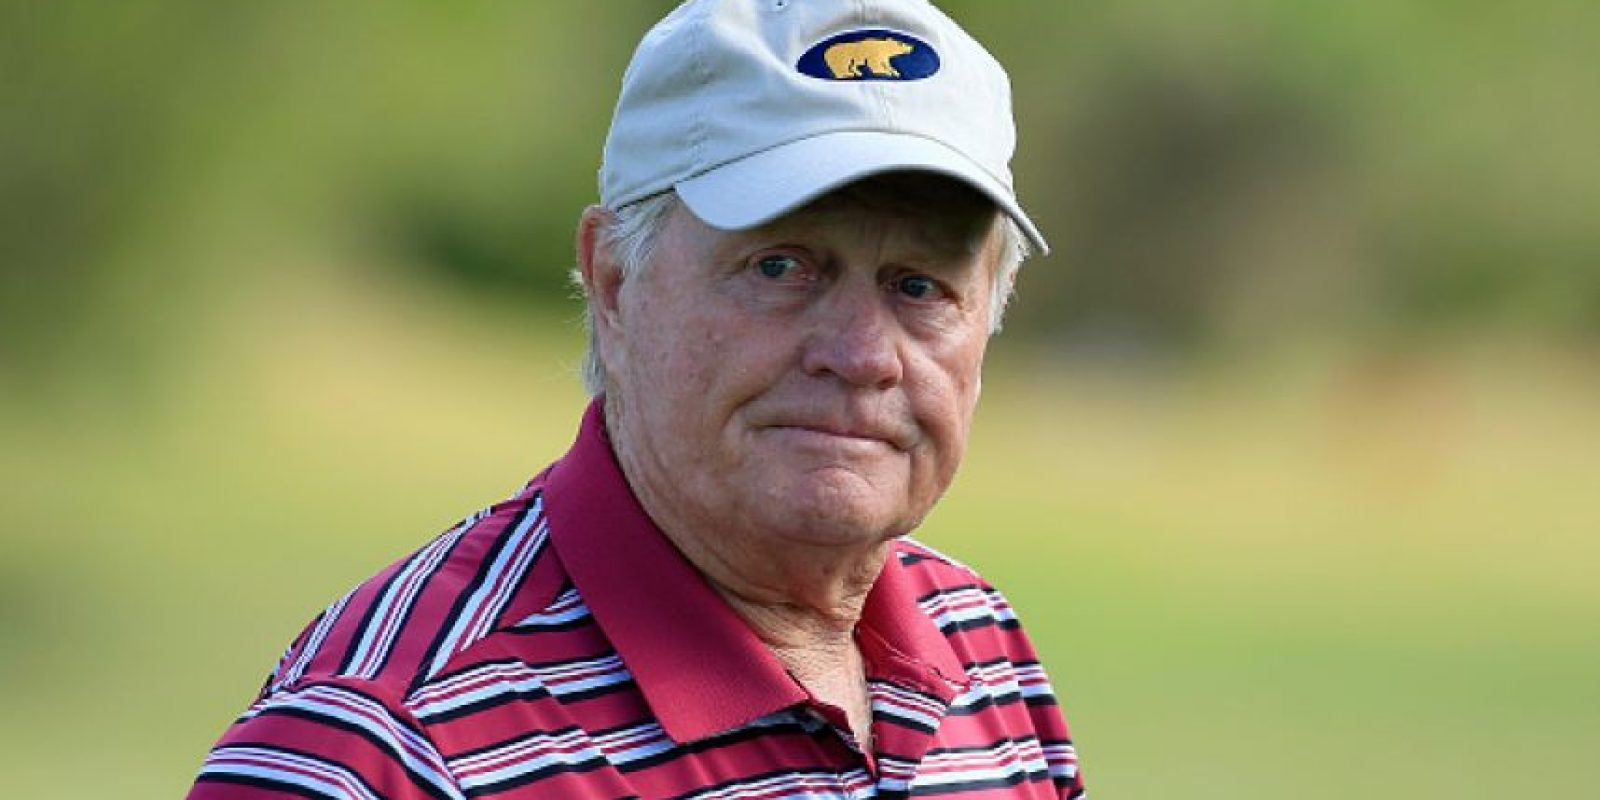 6. Jack Nicklaus, 26 mdd. Foto: Getty Images